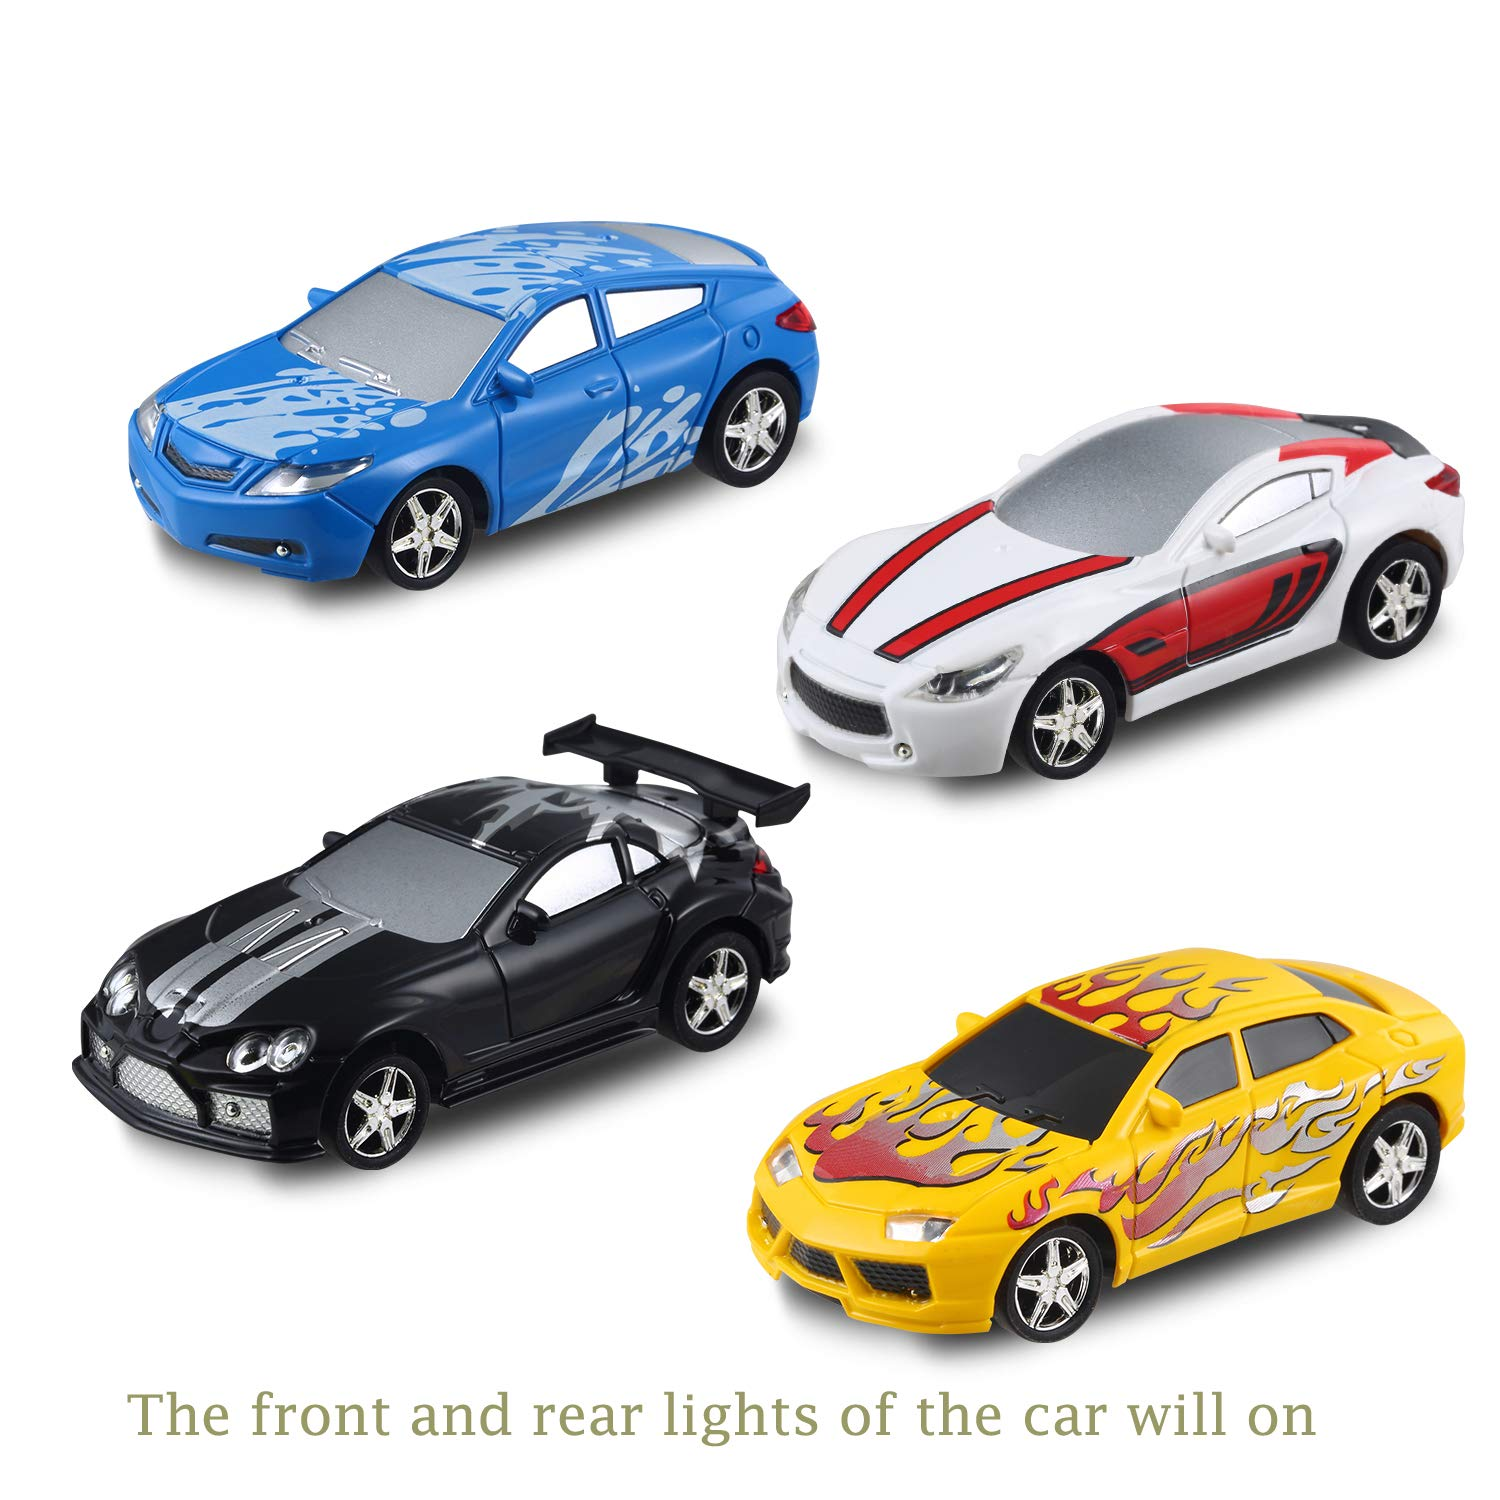 haomsj RC Cars for Kids Rechargable Pocket Racers 2.4GHz RC Remote Control Car Toys for Boys Girls in Ball with LED Light Black, 1 racing-1